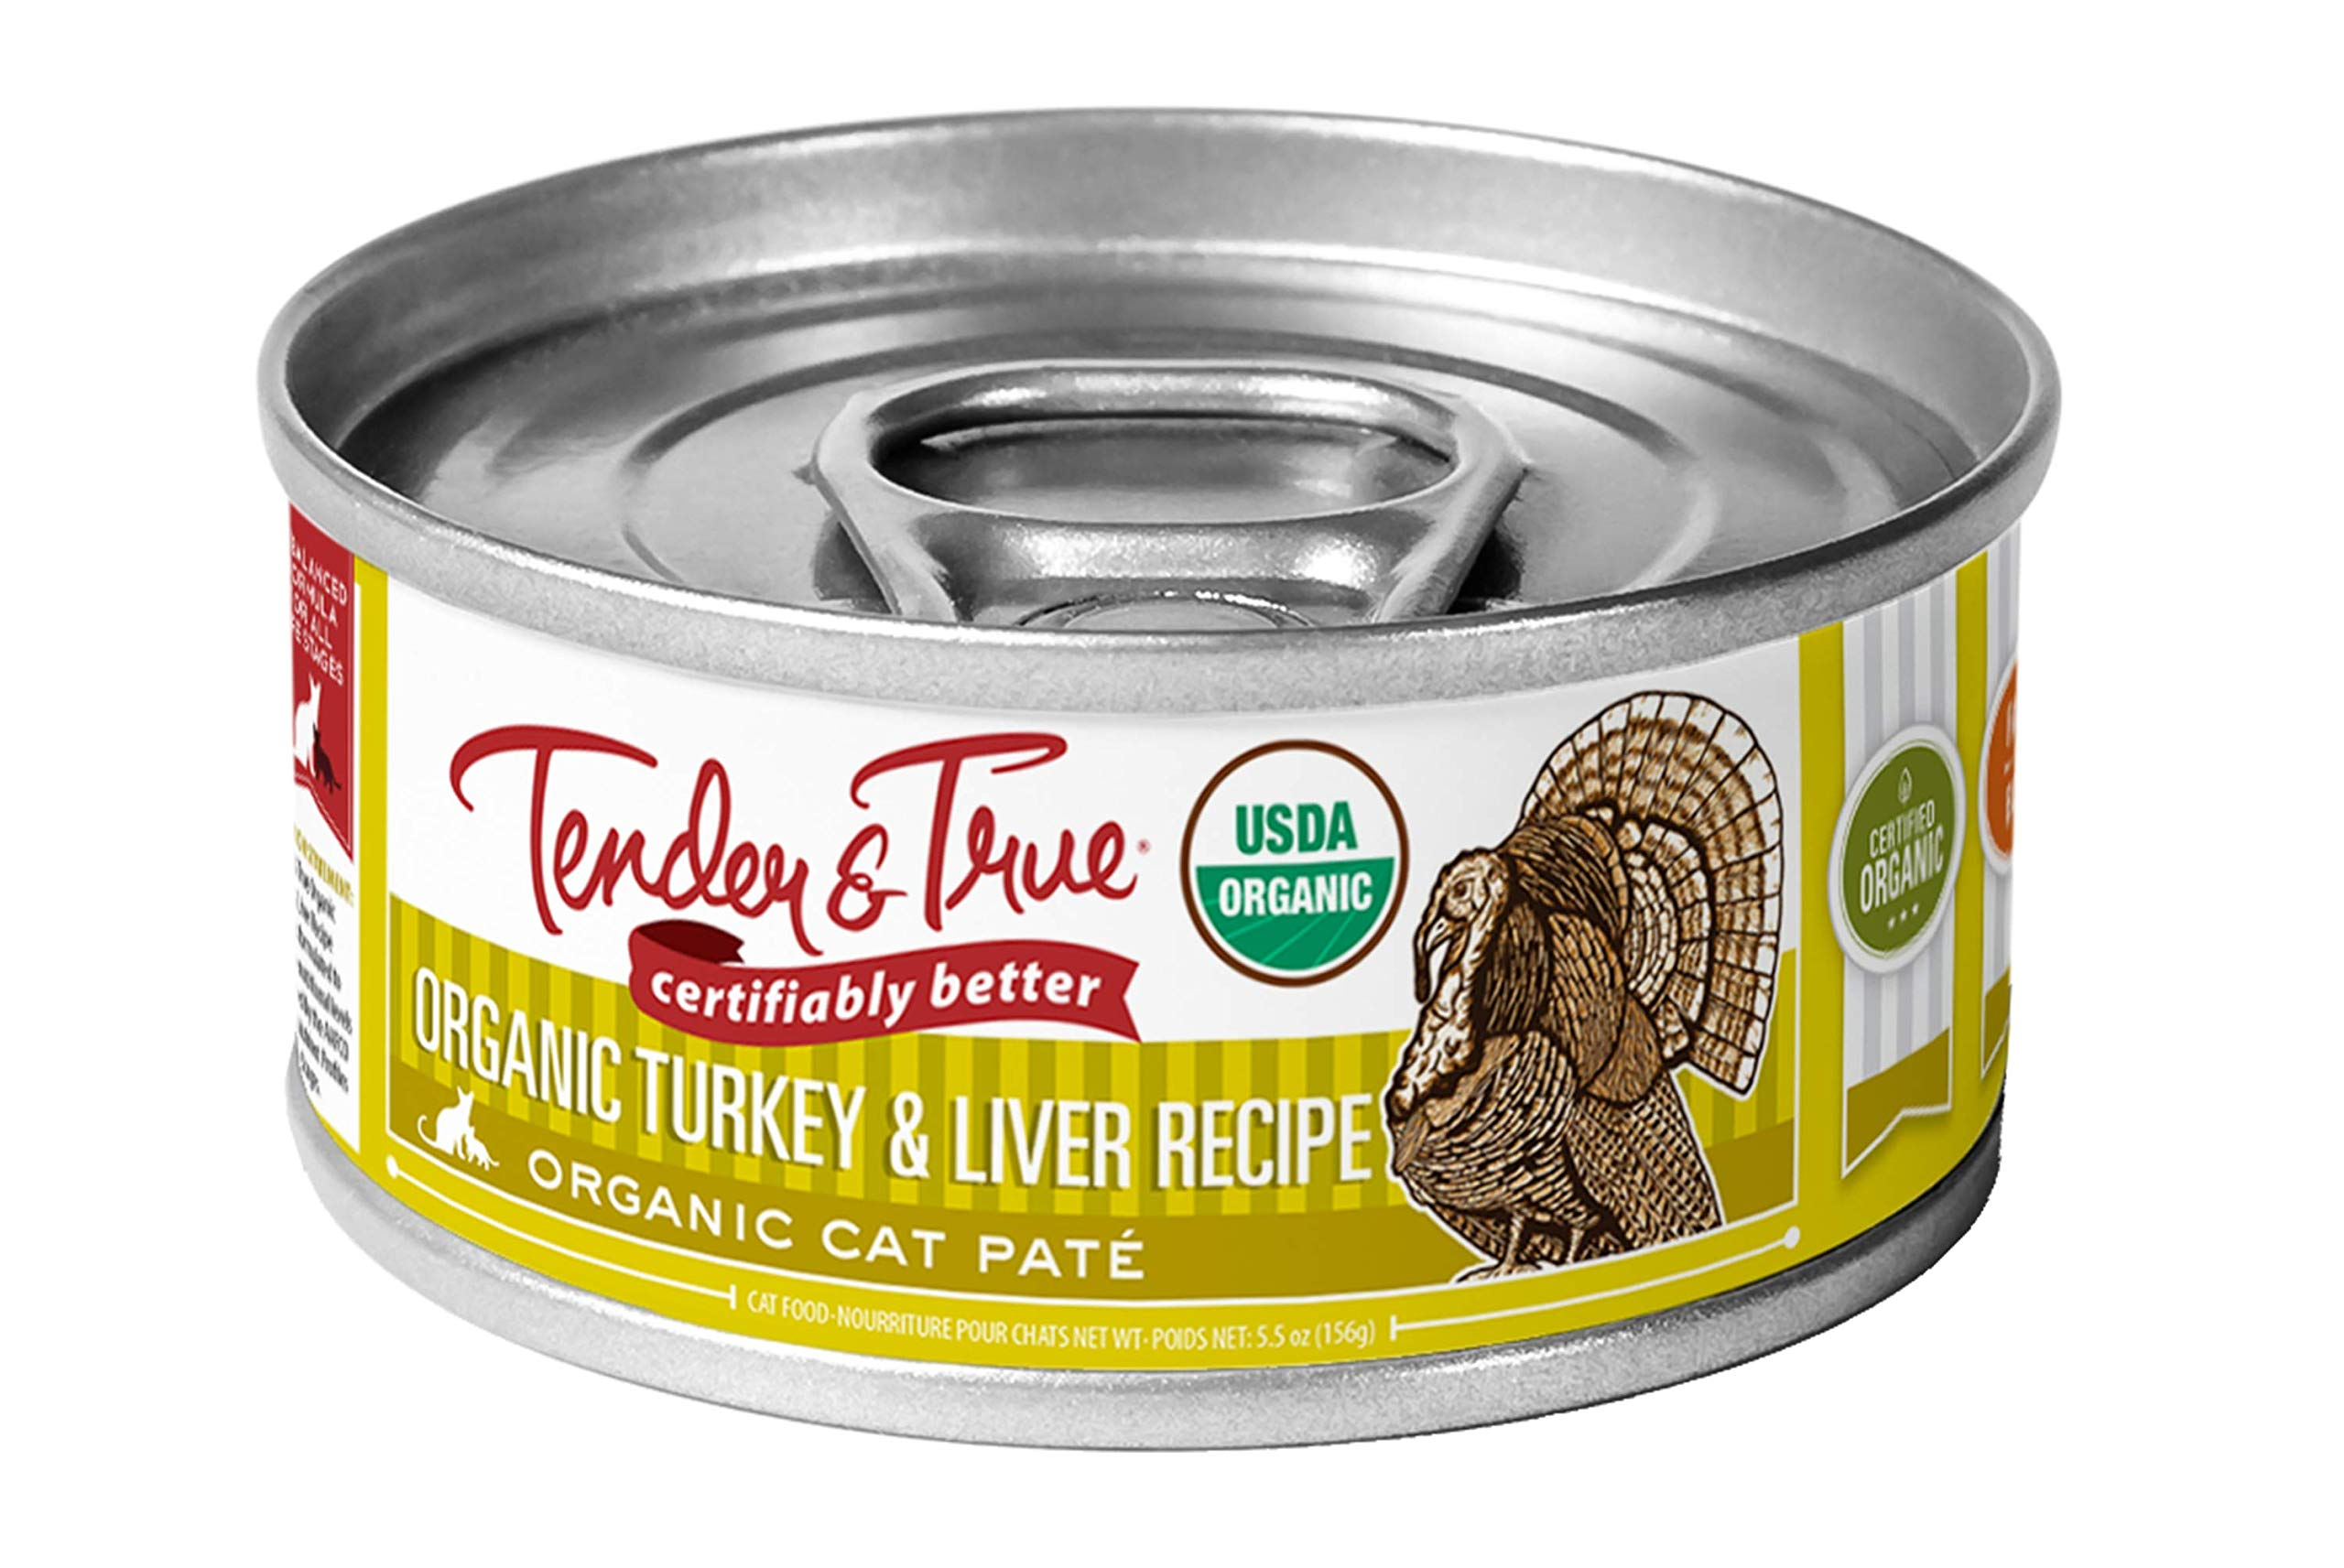 Tender & True Organic Turkey & Liver Recipe Canned Cat Food, 5.5 oz, Case of 24 by Tender & True Pet Nutrition